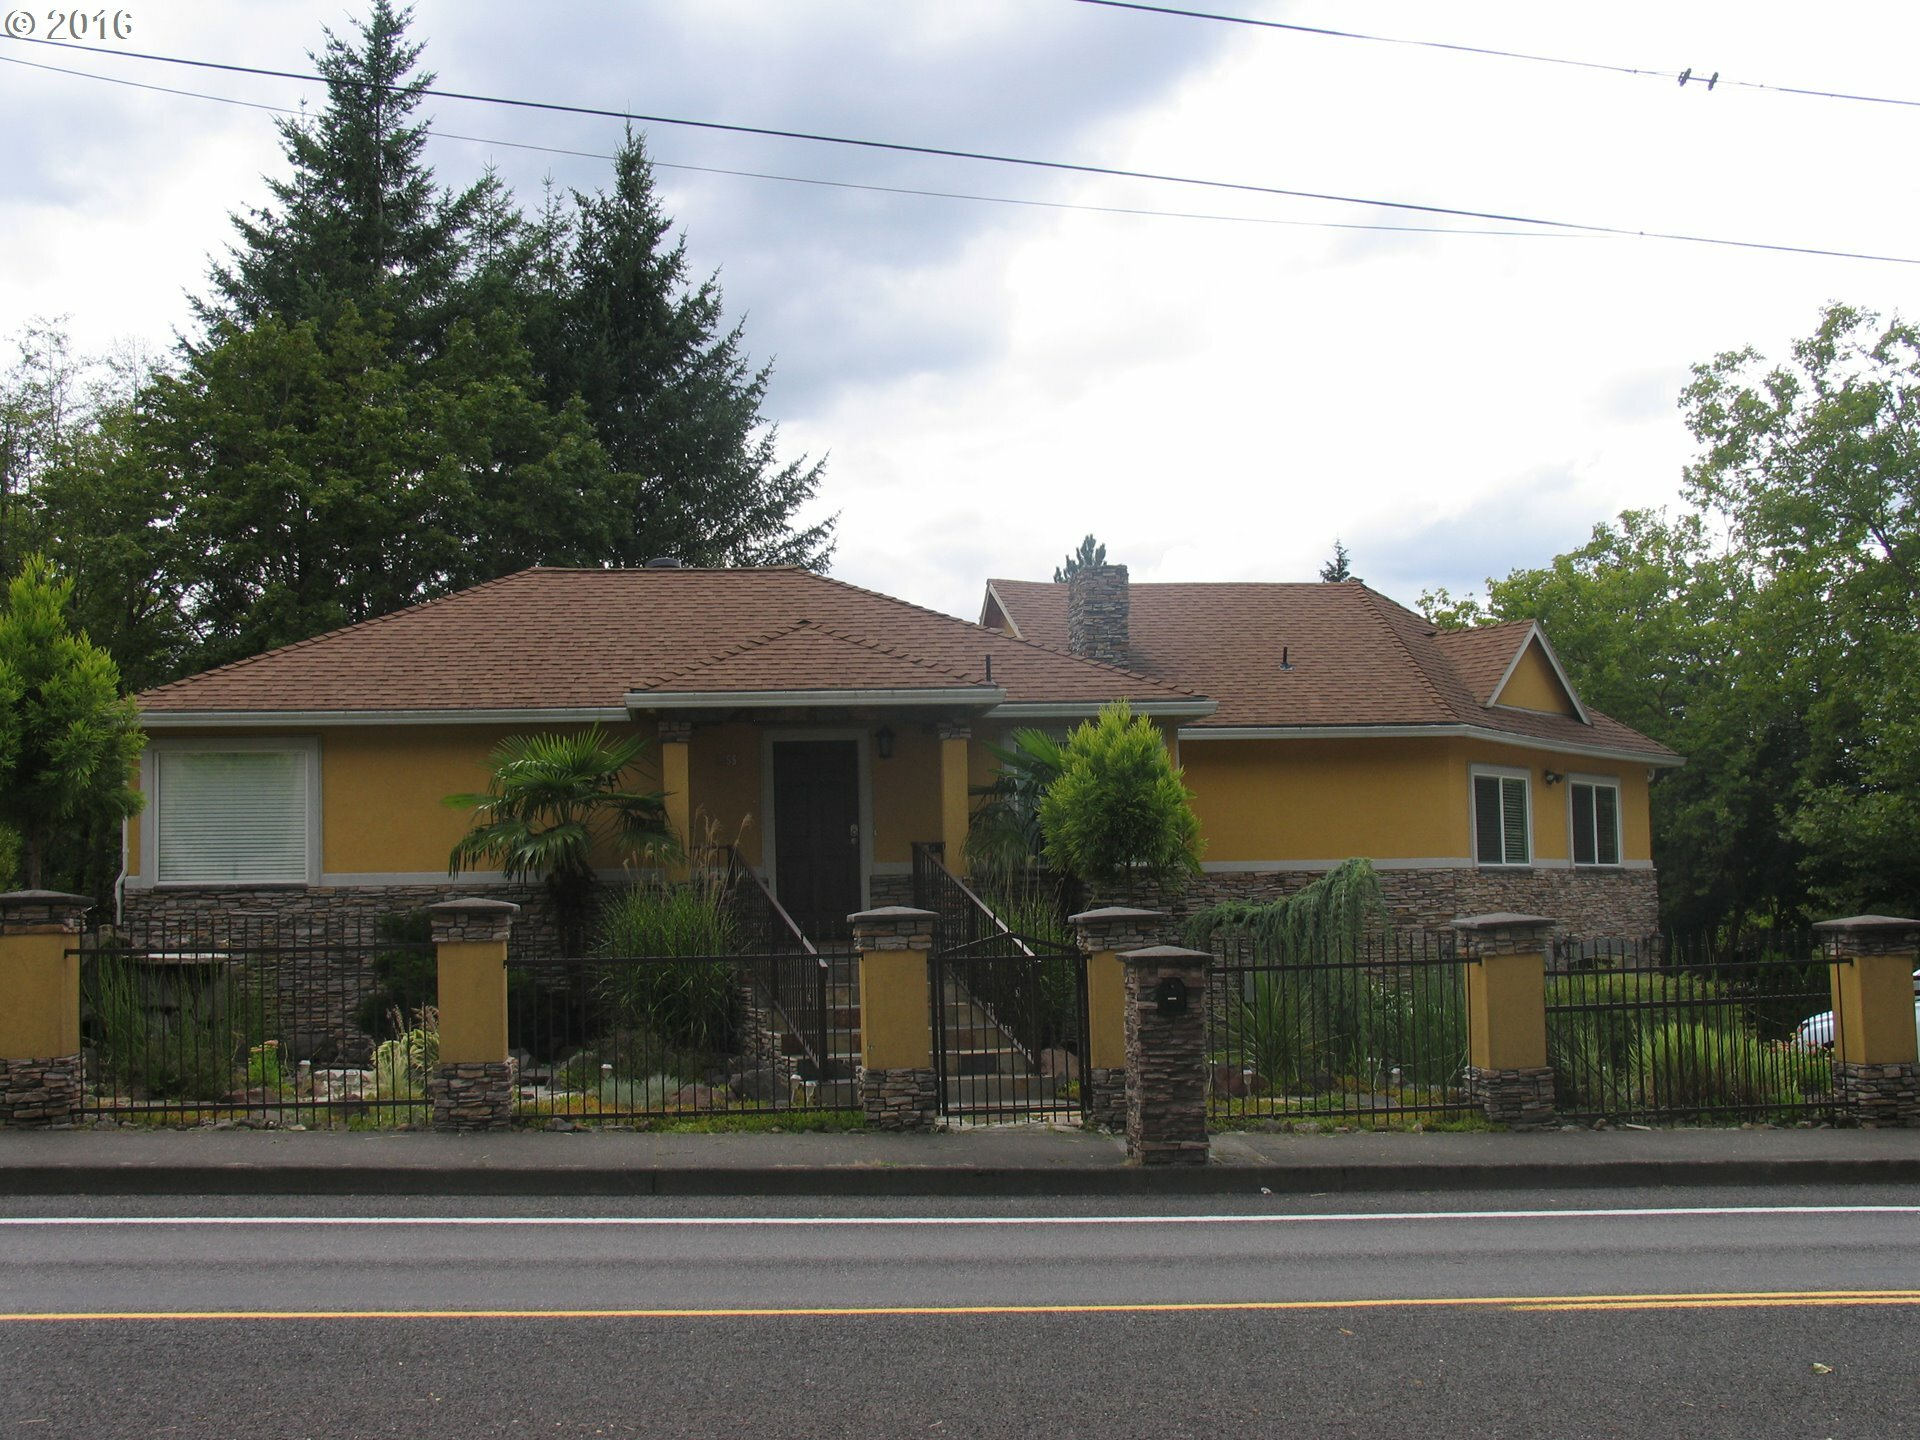 1155 Sw Towle Ave, Gresham, OR - USA (photo 1)